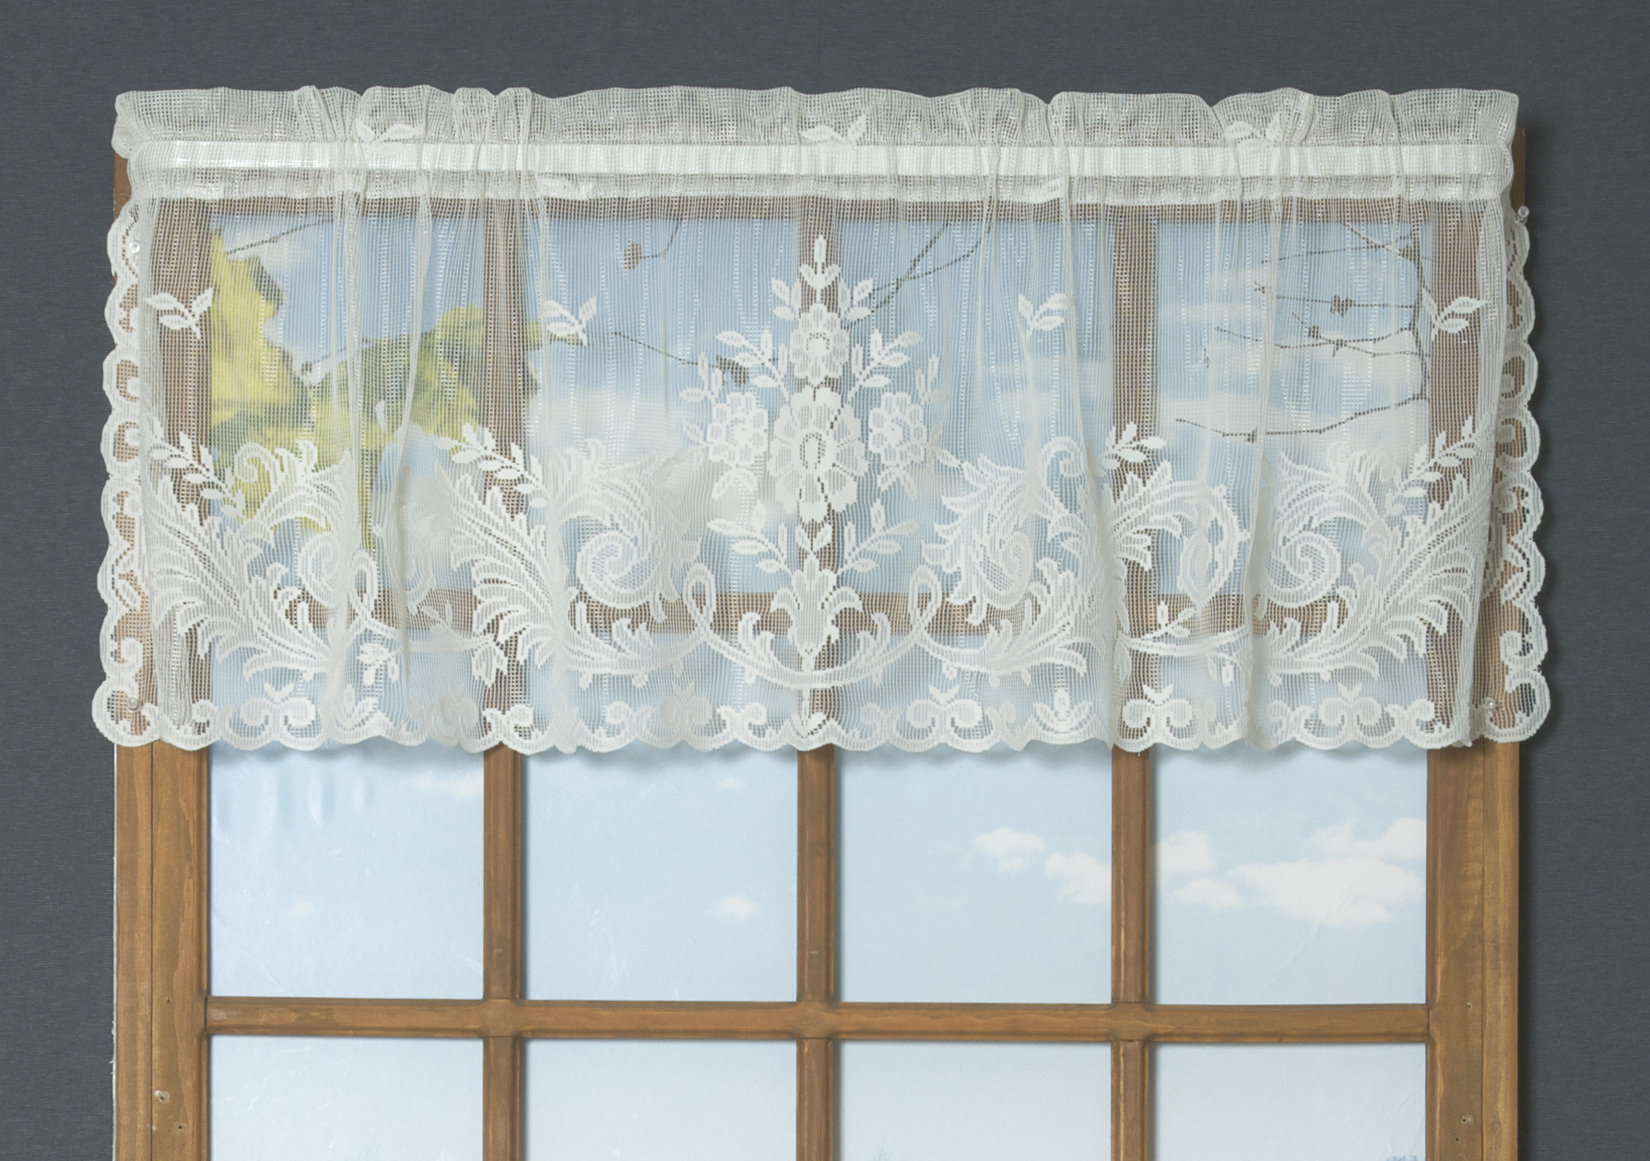 valence macrame bise alliance cafe inc brise in lace height htm valance curtains curtain